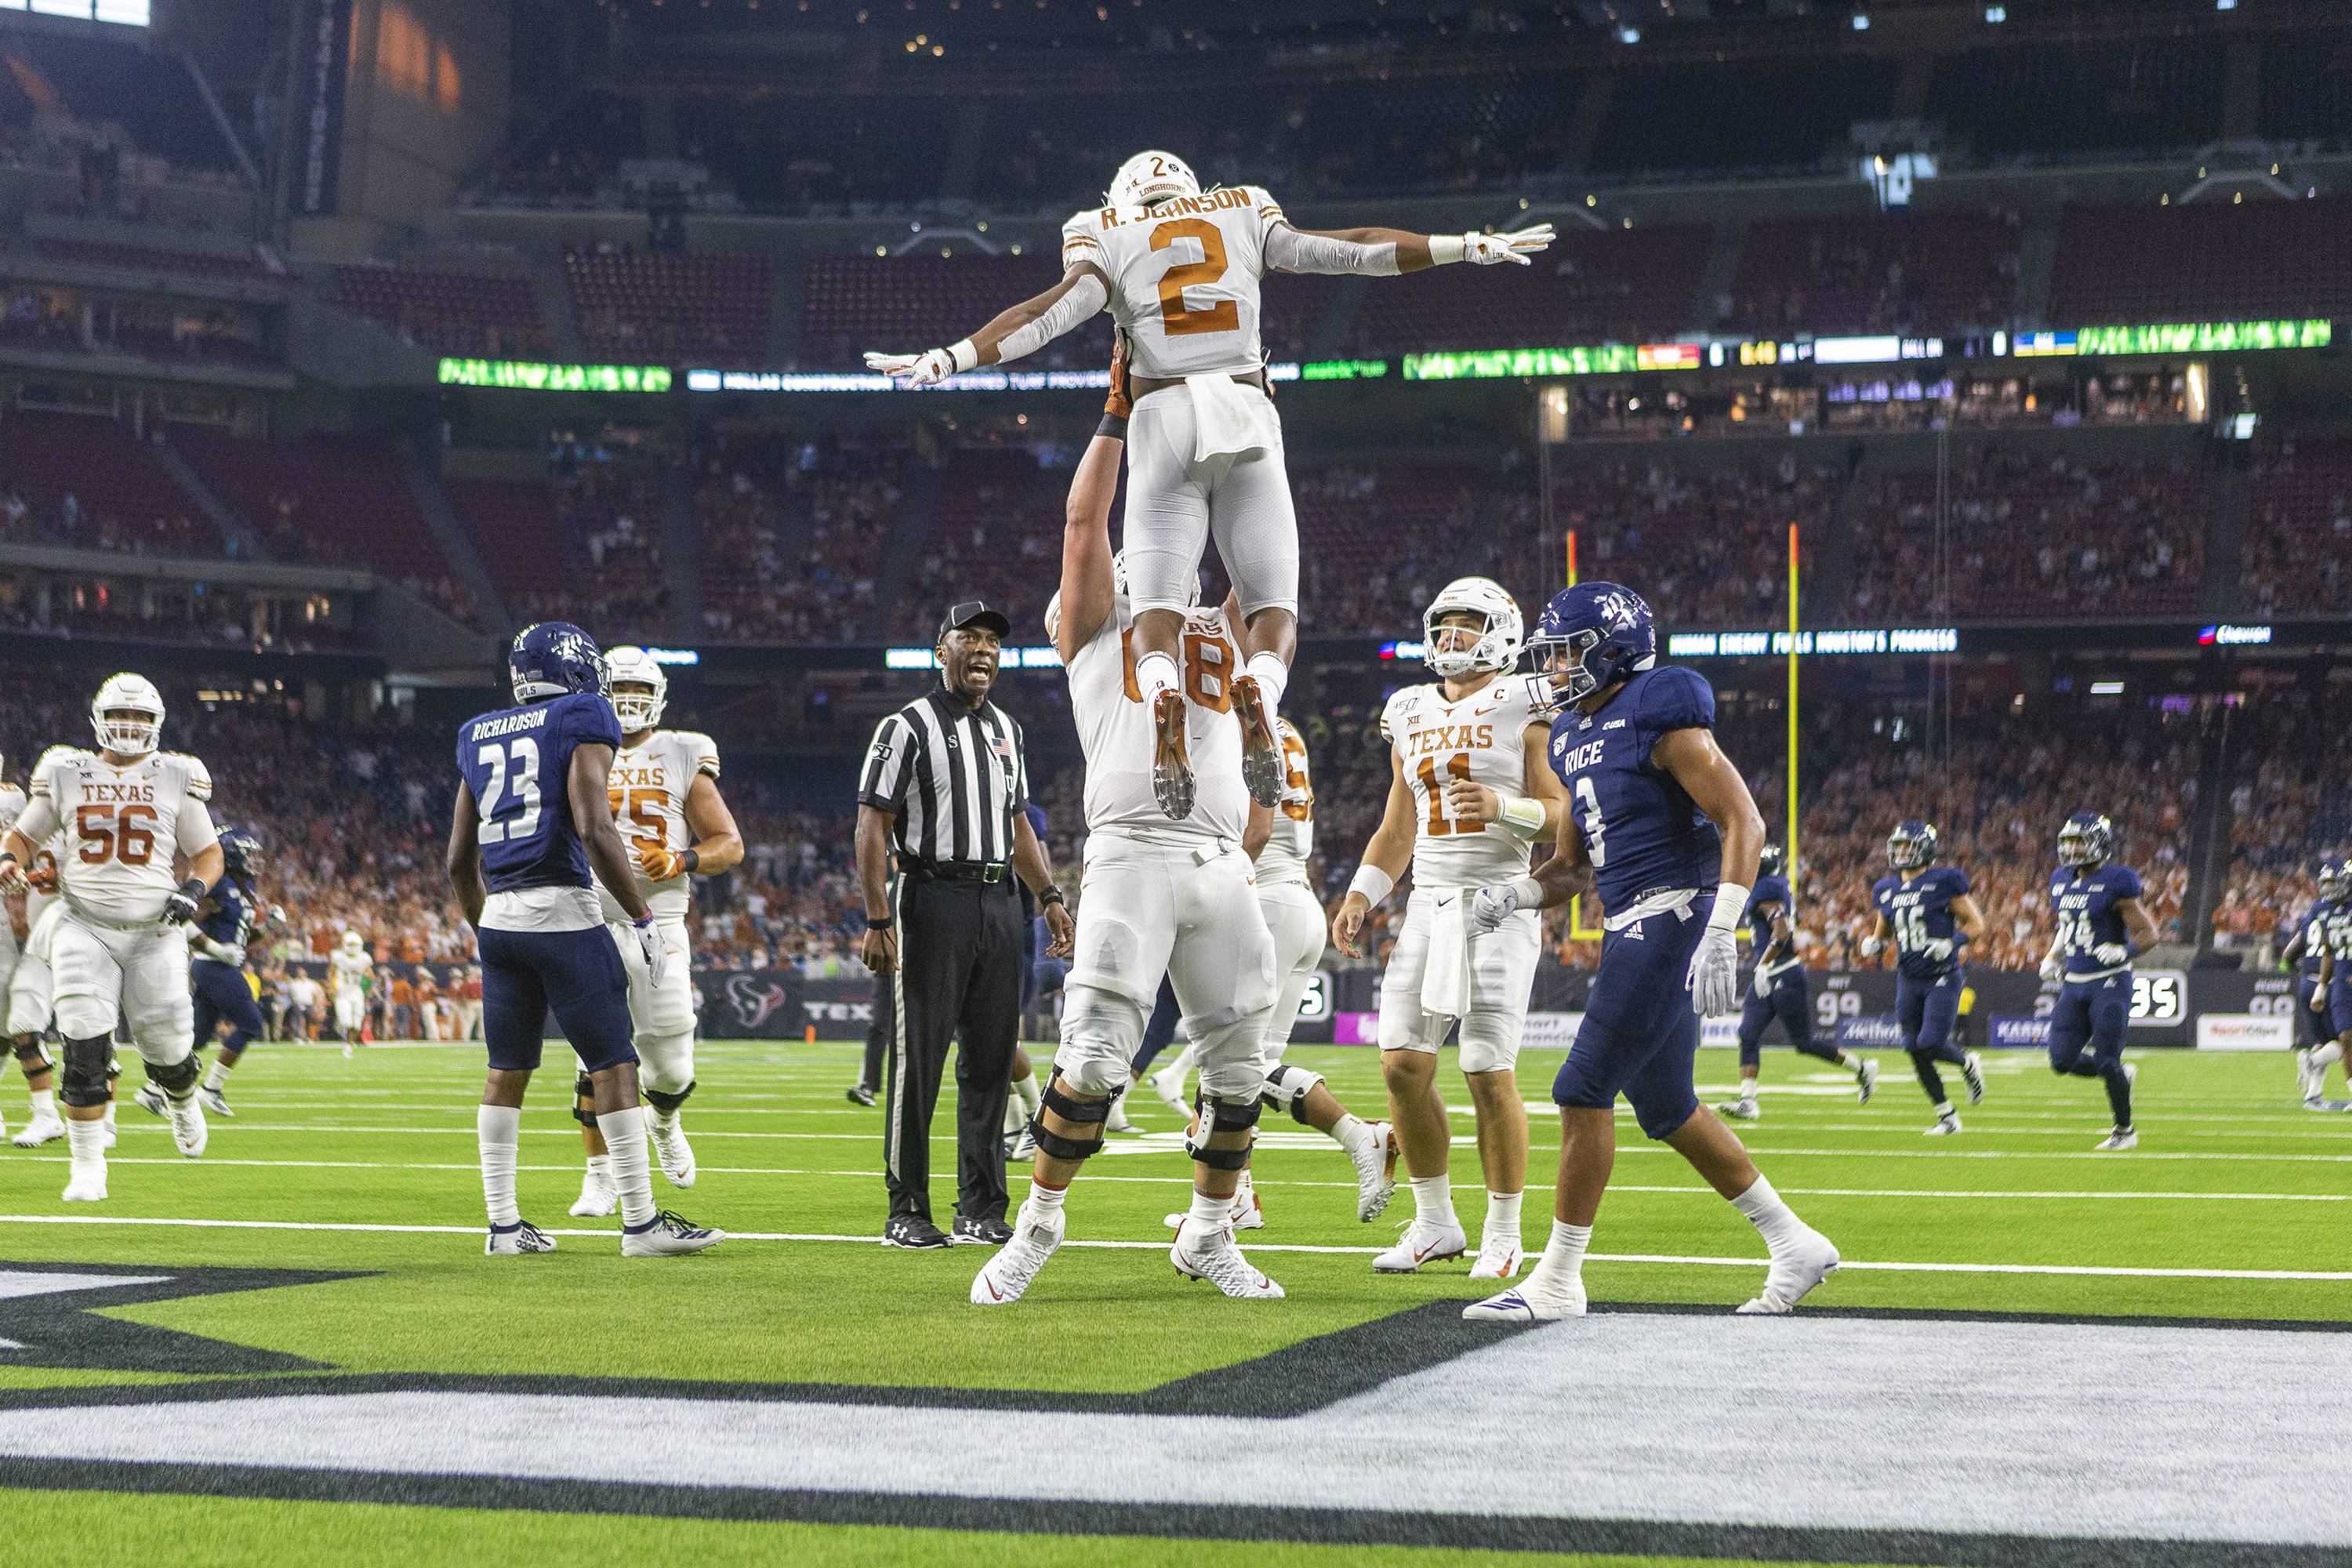 Texas is controlling, well, just about everything; Horns lead Rice at halftime, 31-0